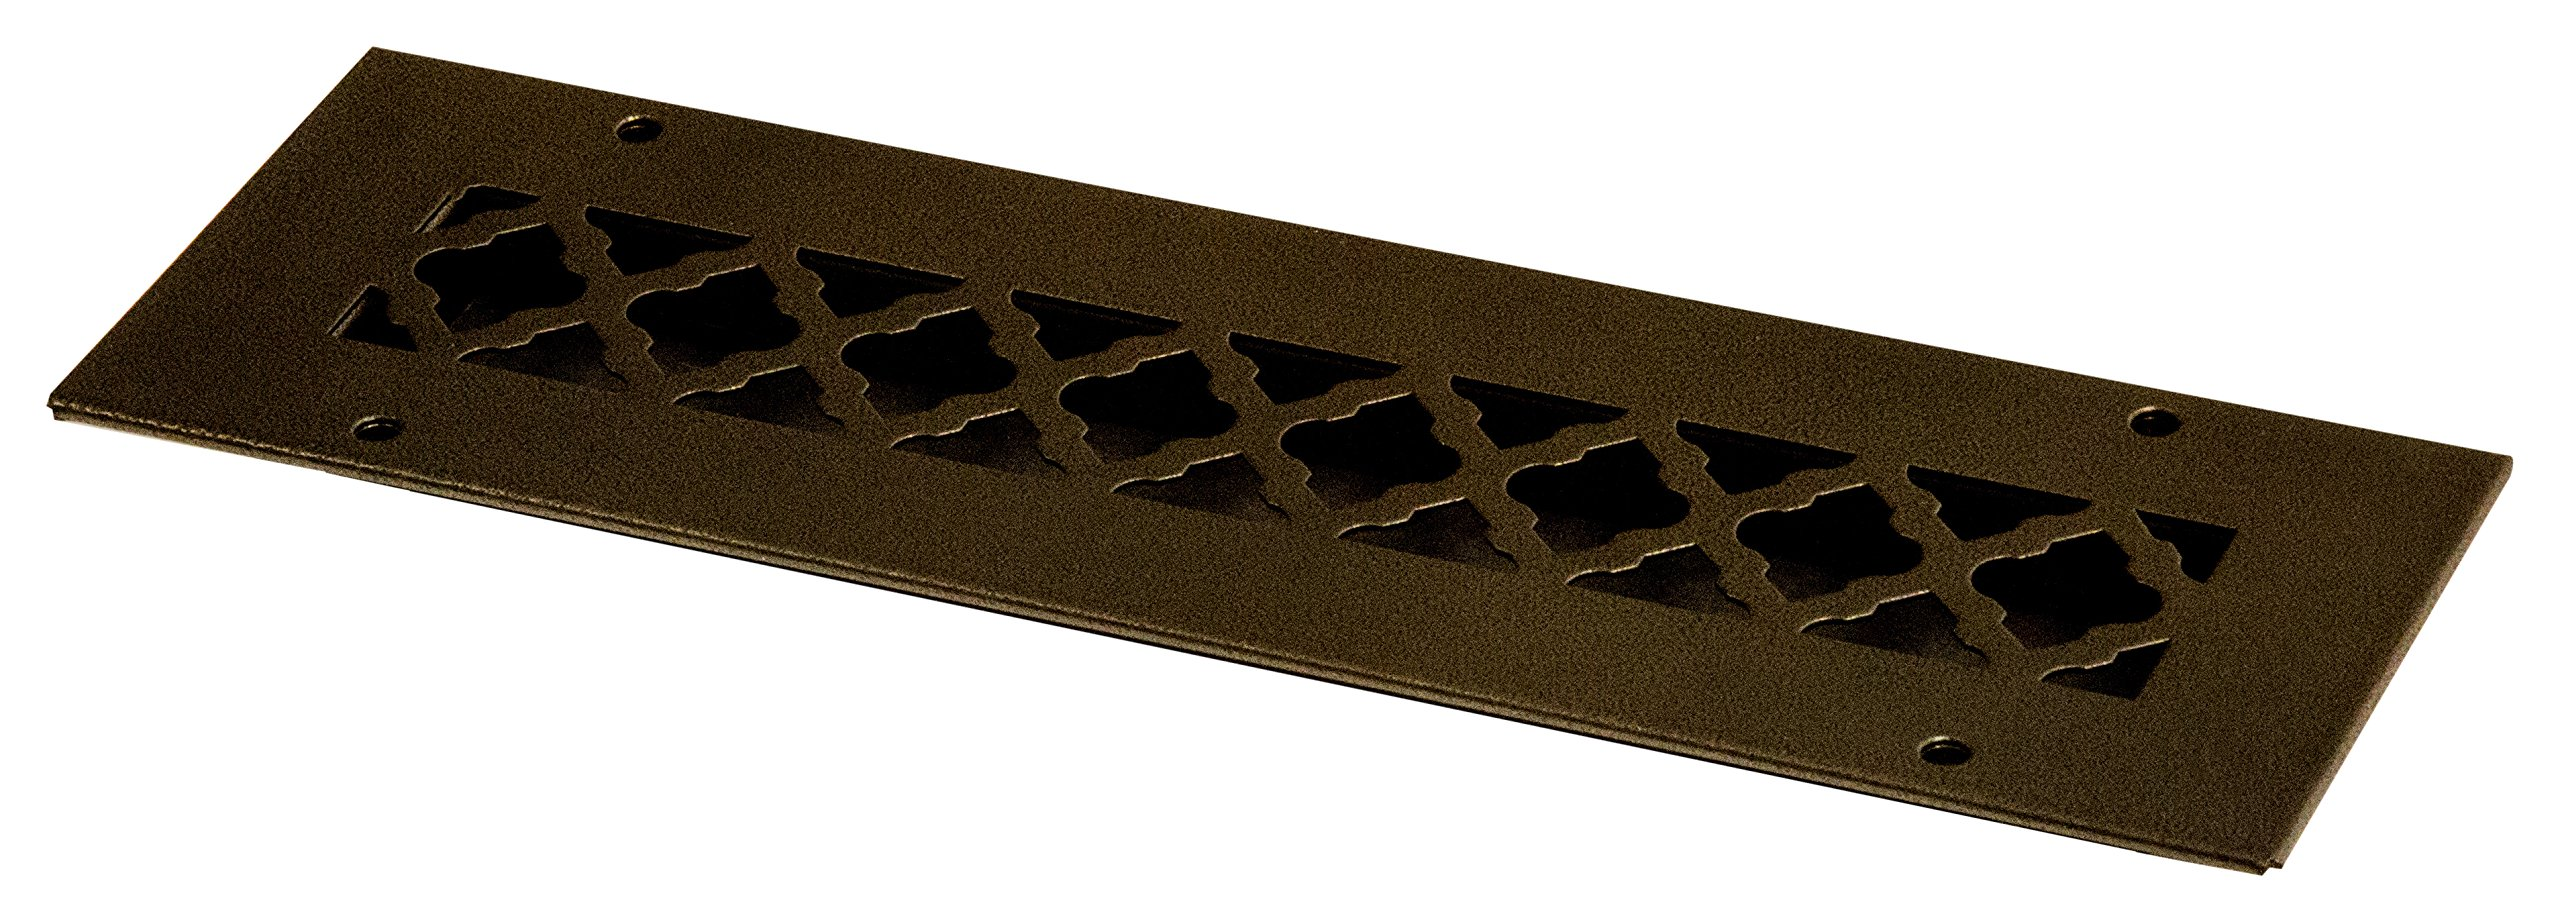 SteelCrest BTU12X2.25RORBH Bronze Series Designer Wall/Ceiling Vent Cover, with Mounting Screws, Oil Rubbed Bronze